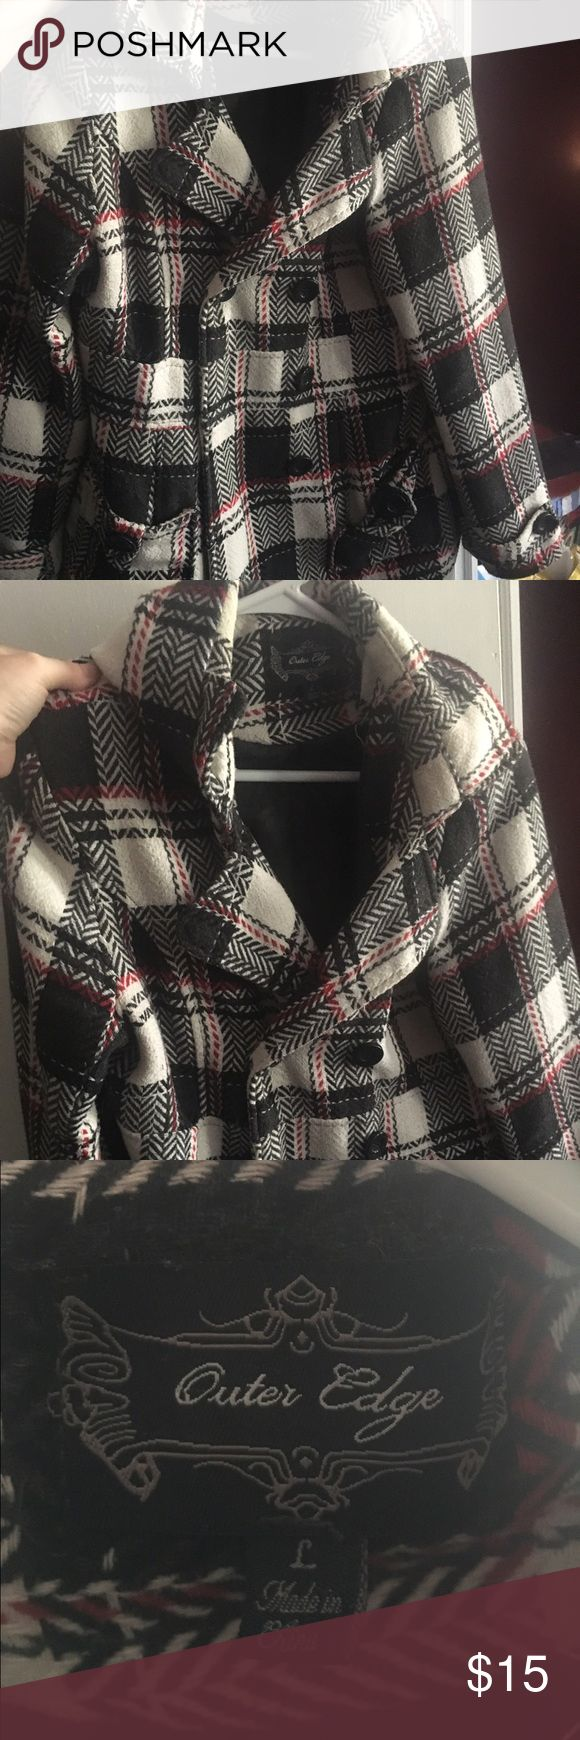 Red white and black pea coat Size L; had for 3 years; has some tearing but can be easily sewn; buttons; has a hood for the rain and sun; accepting offers. Jackets & Coats Pea Coats